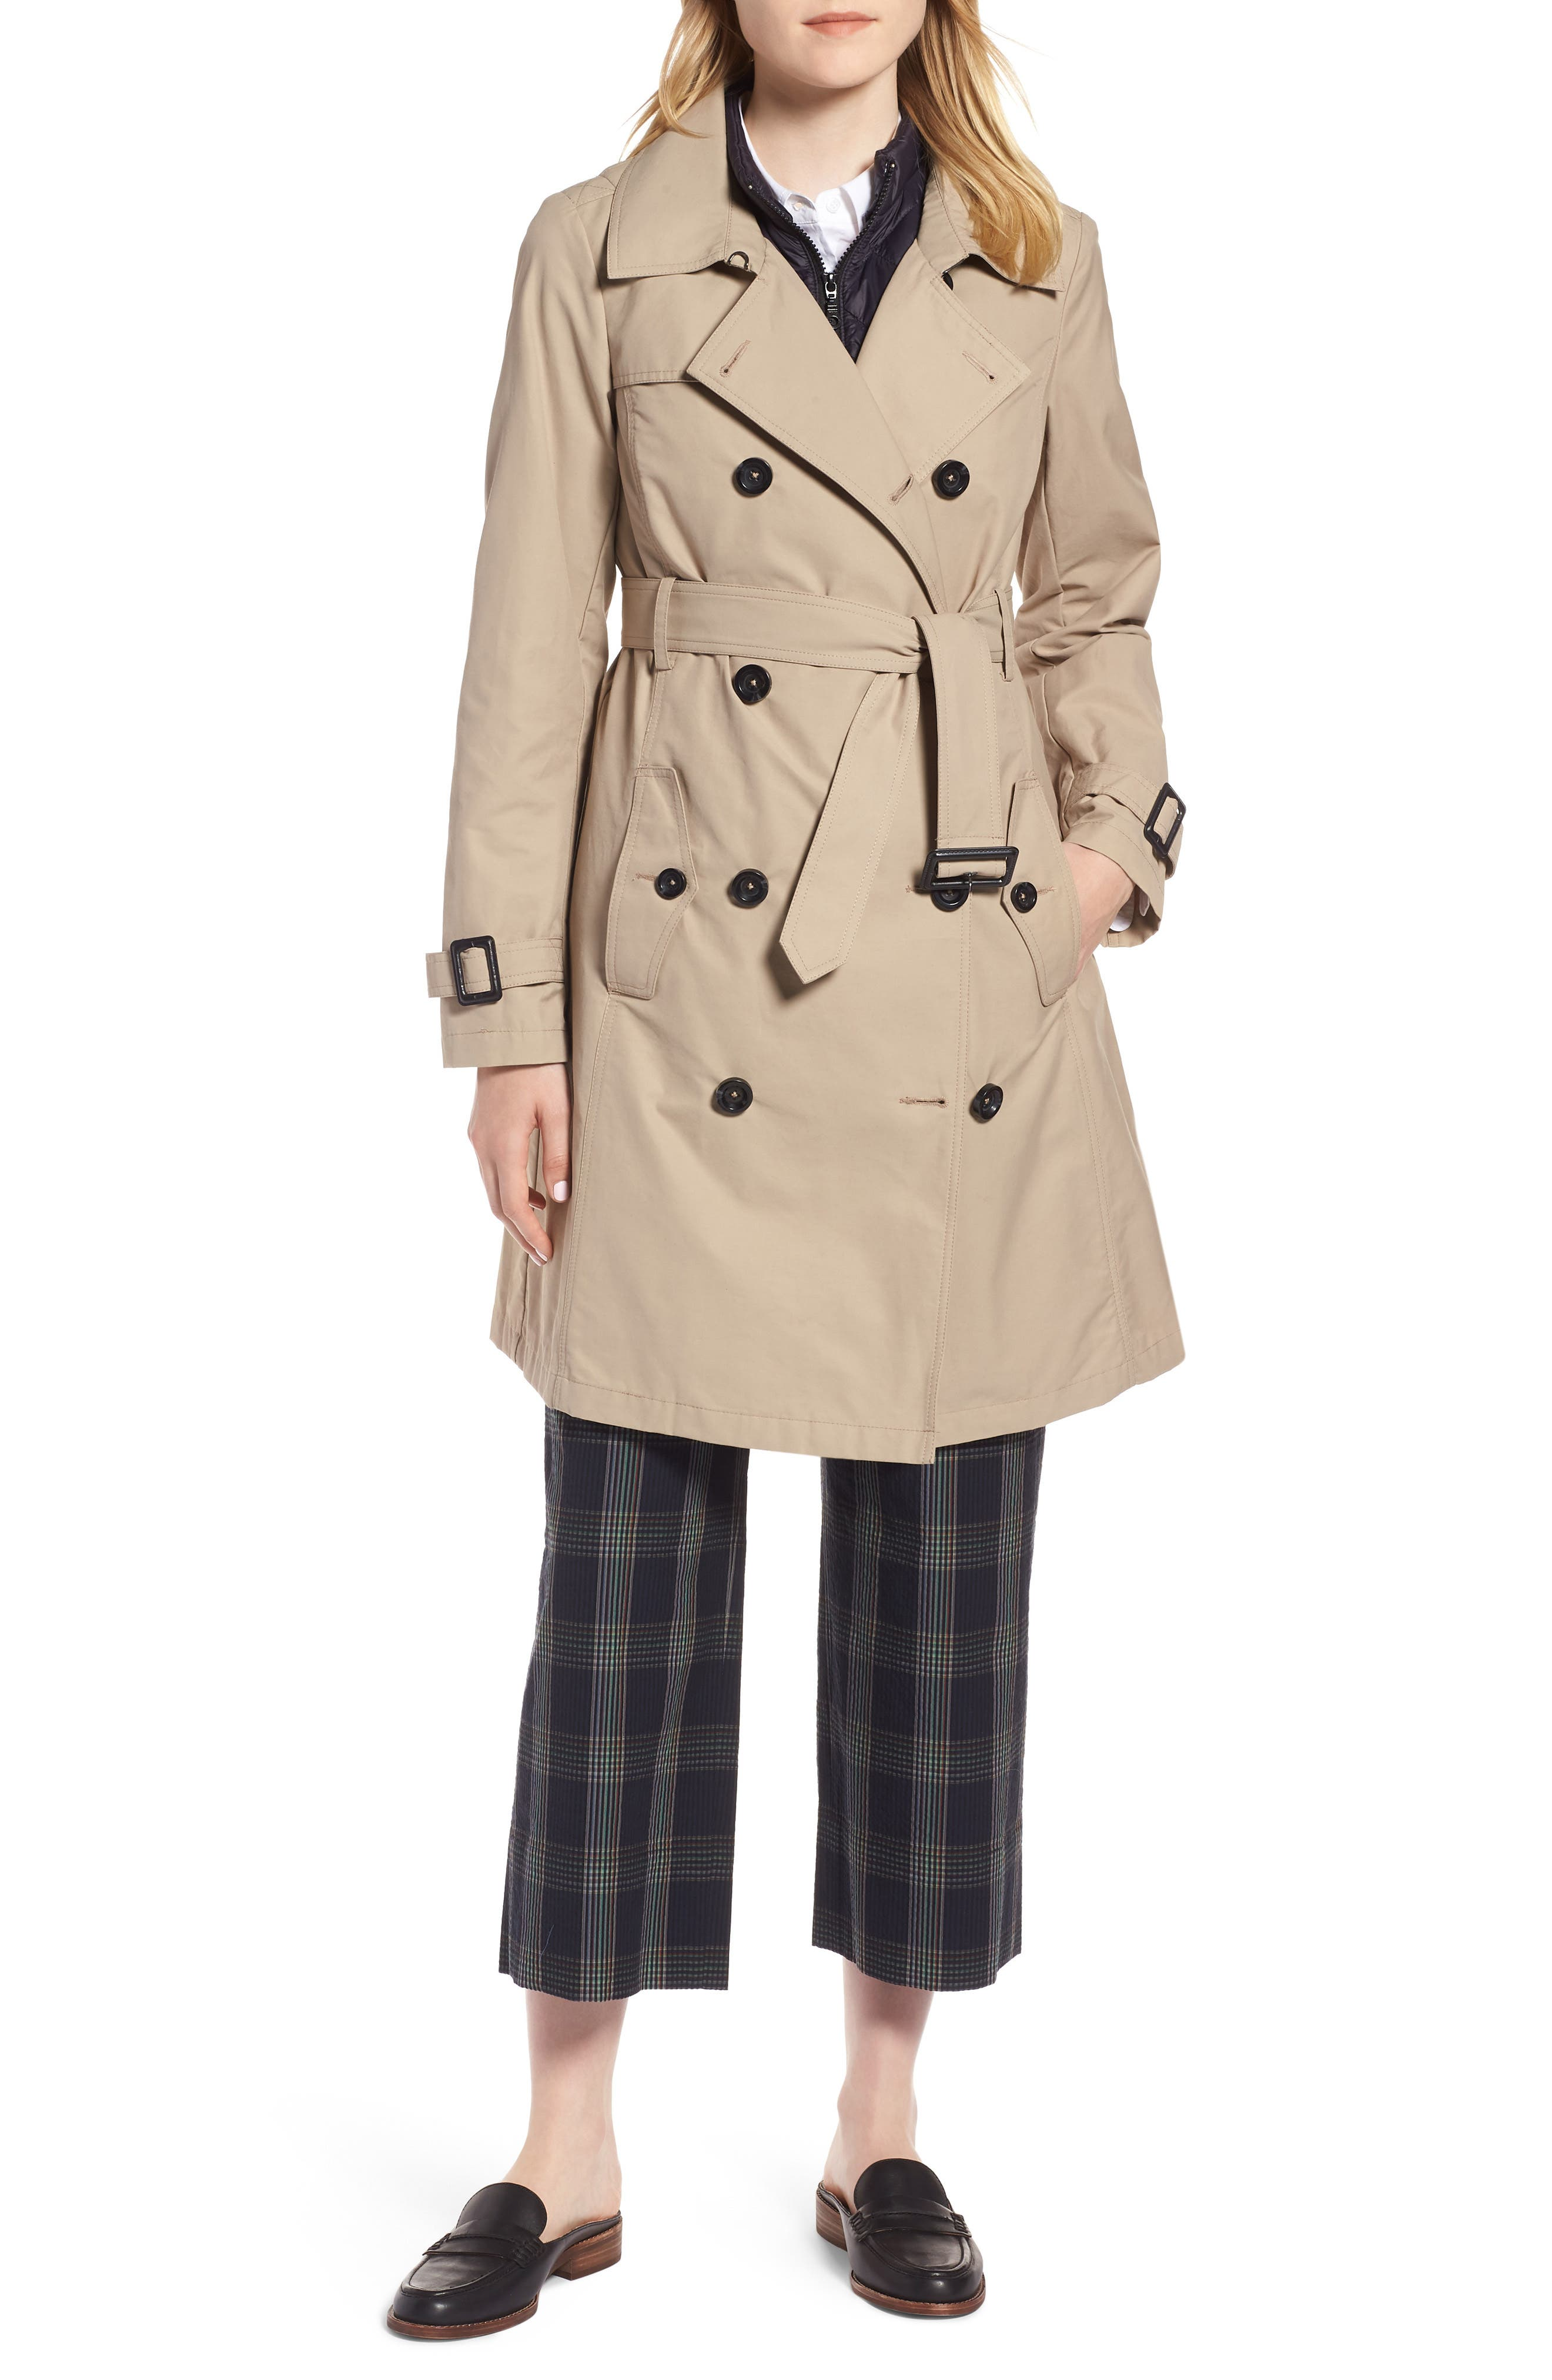 3-in-1 Trench Coat with Vest,                             Main thumbnail 1, color,                             299